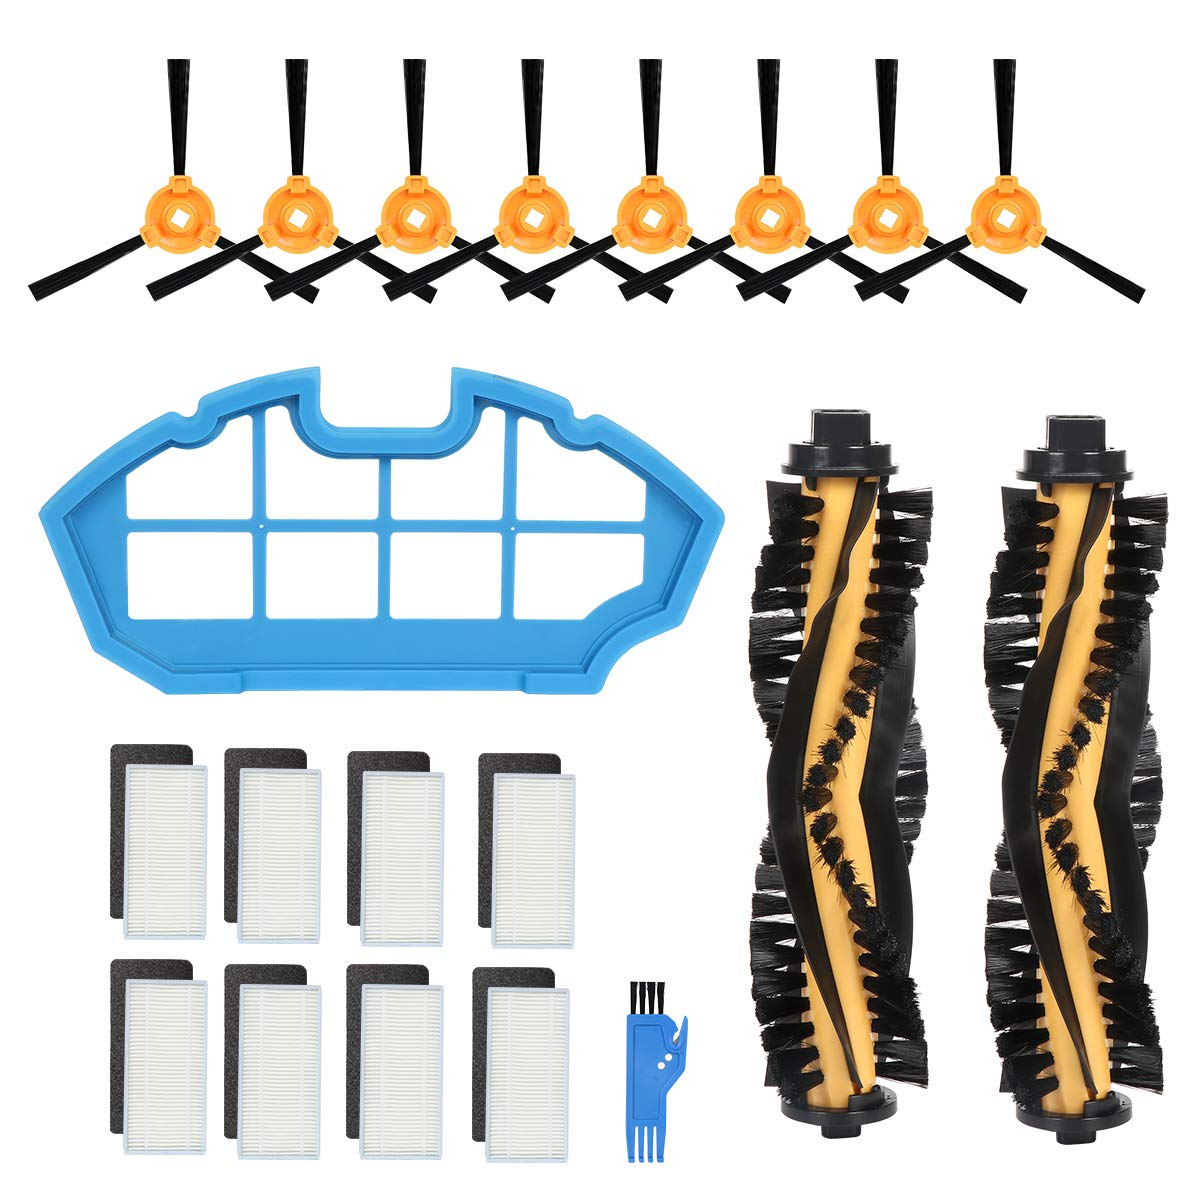 Wigbow Accessory Kit for DEEBOT N79S & N79 Robotic Vacuum Cleaner - 2 Main Brush +1 Filter+ 8 Filters + 8 Side Brushes